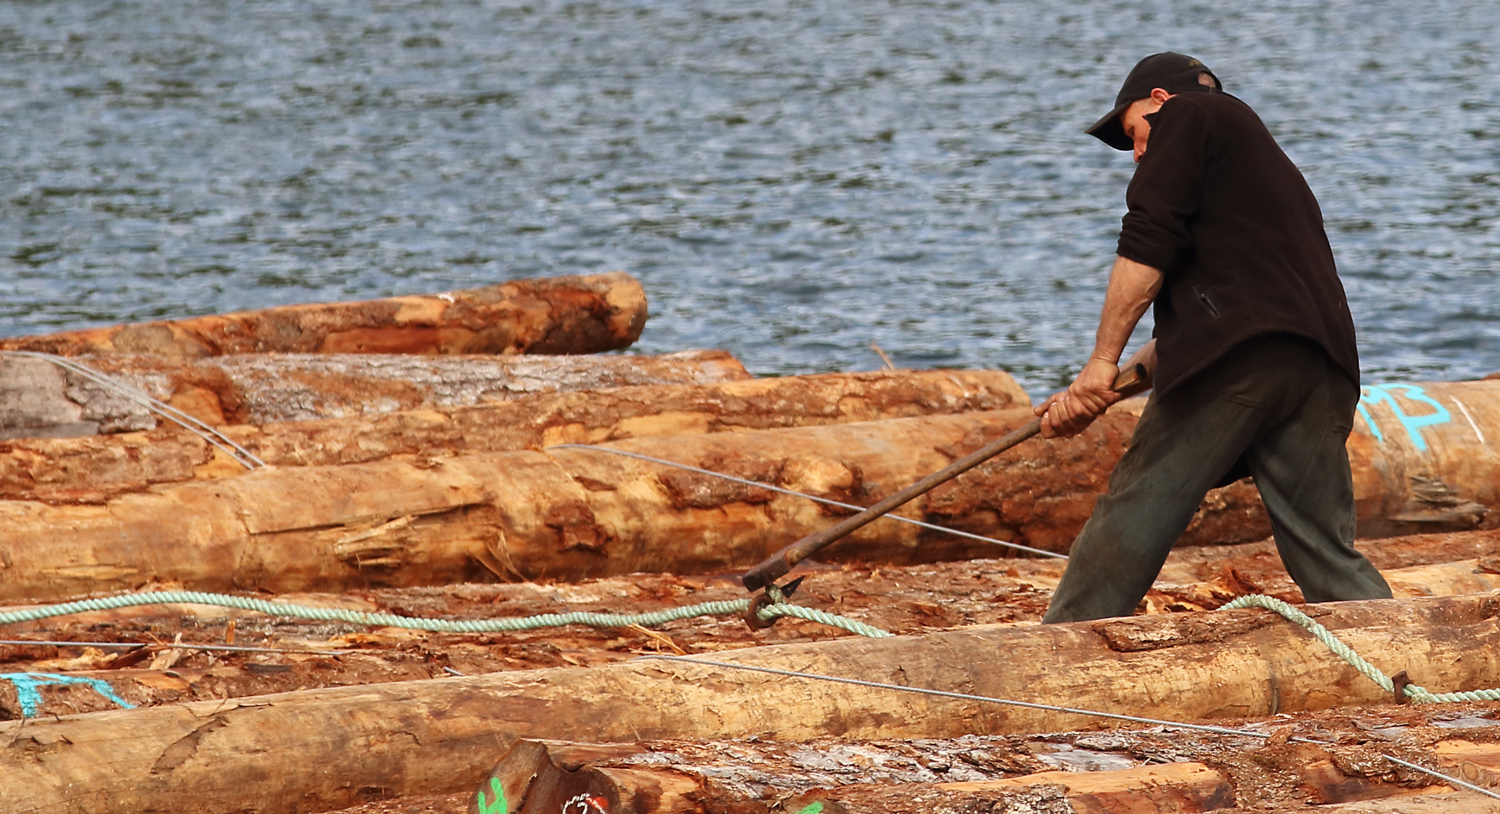 Boom man knocking log dog out of log bundle with an ax near Prince of Wales Island Southeast Alaska